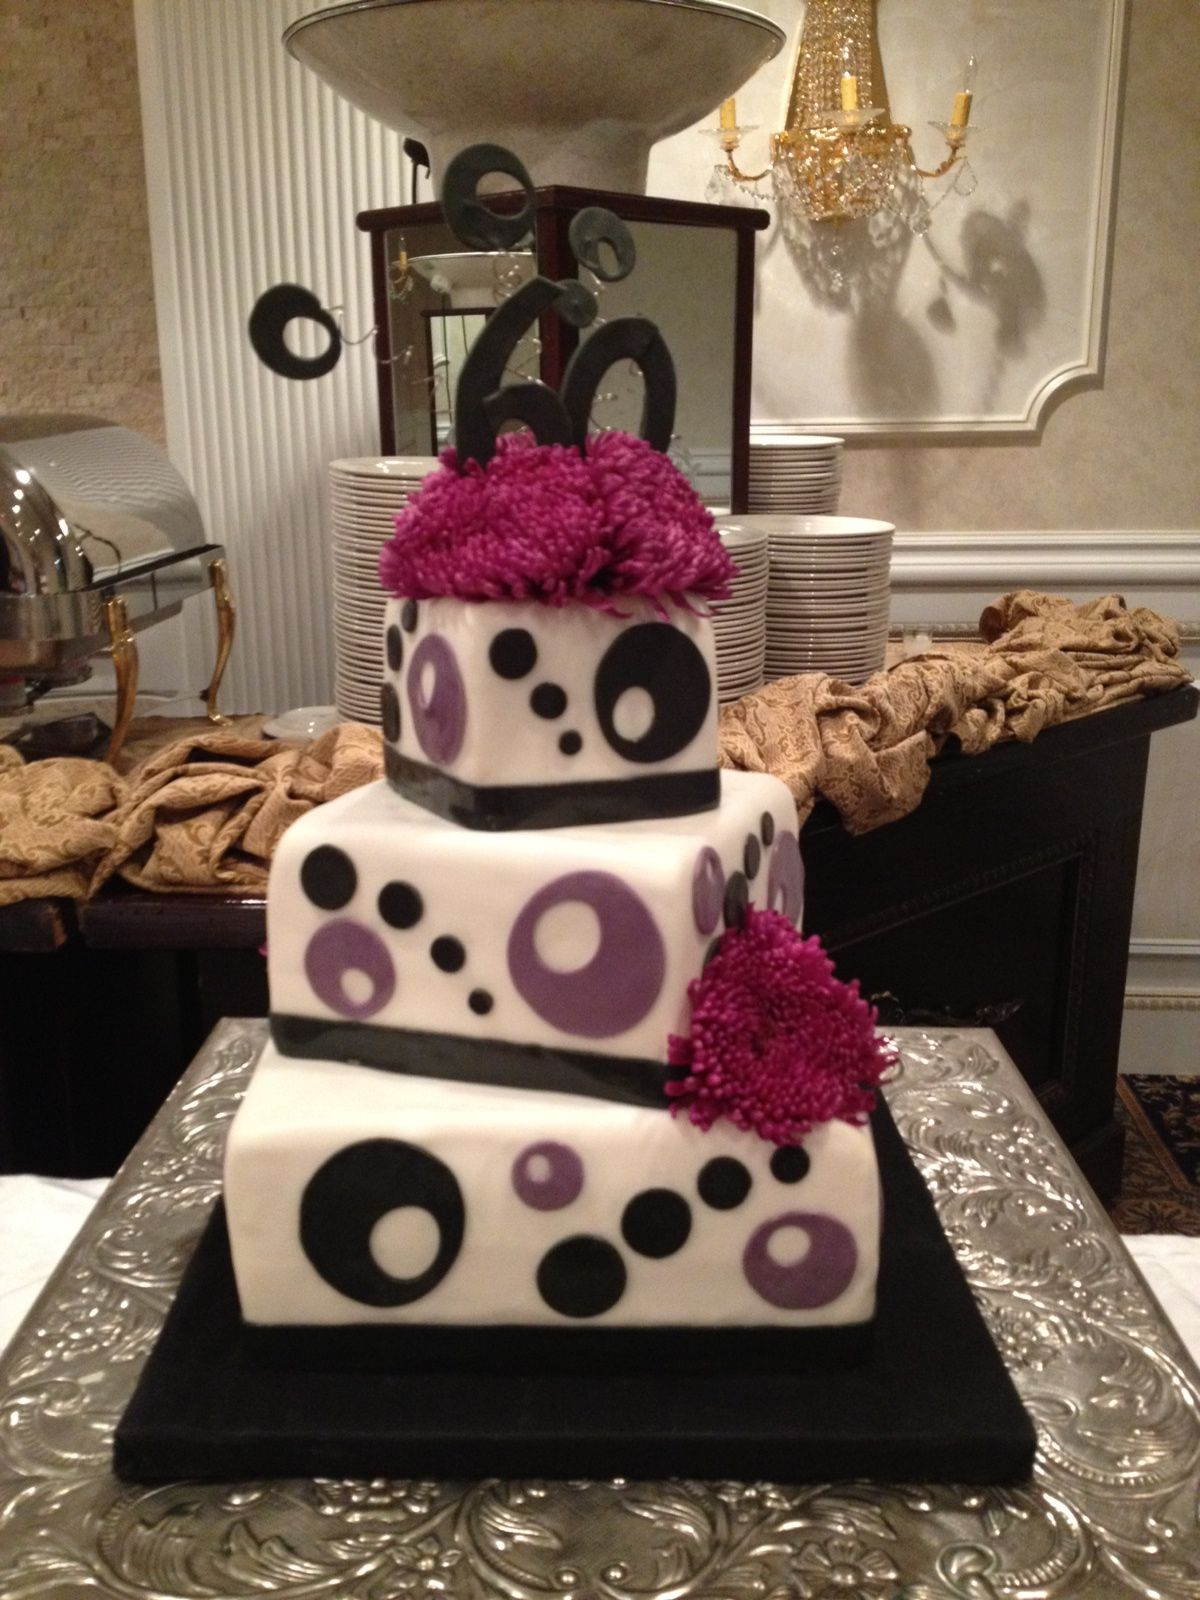 Surprise 60th Birthday Cake Themed Cakes Cake 60th